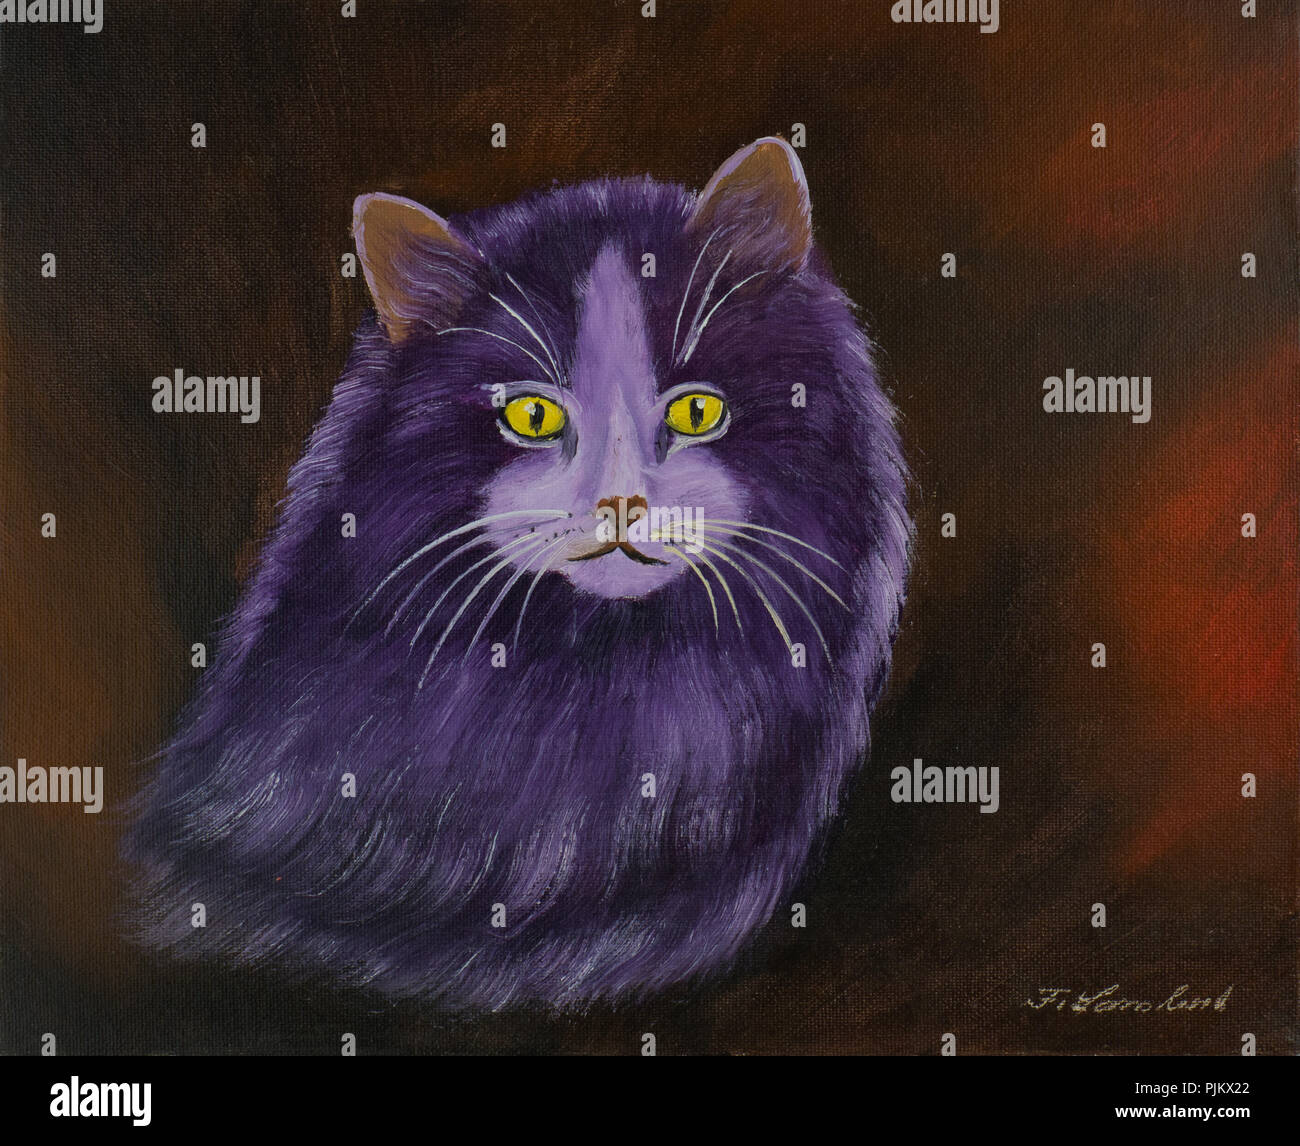 Oil painting of a purple angora cat with yellow eyes and thick fur - Stock Image